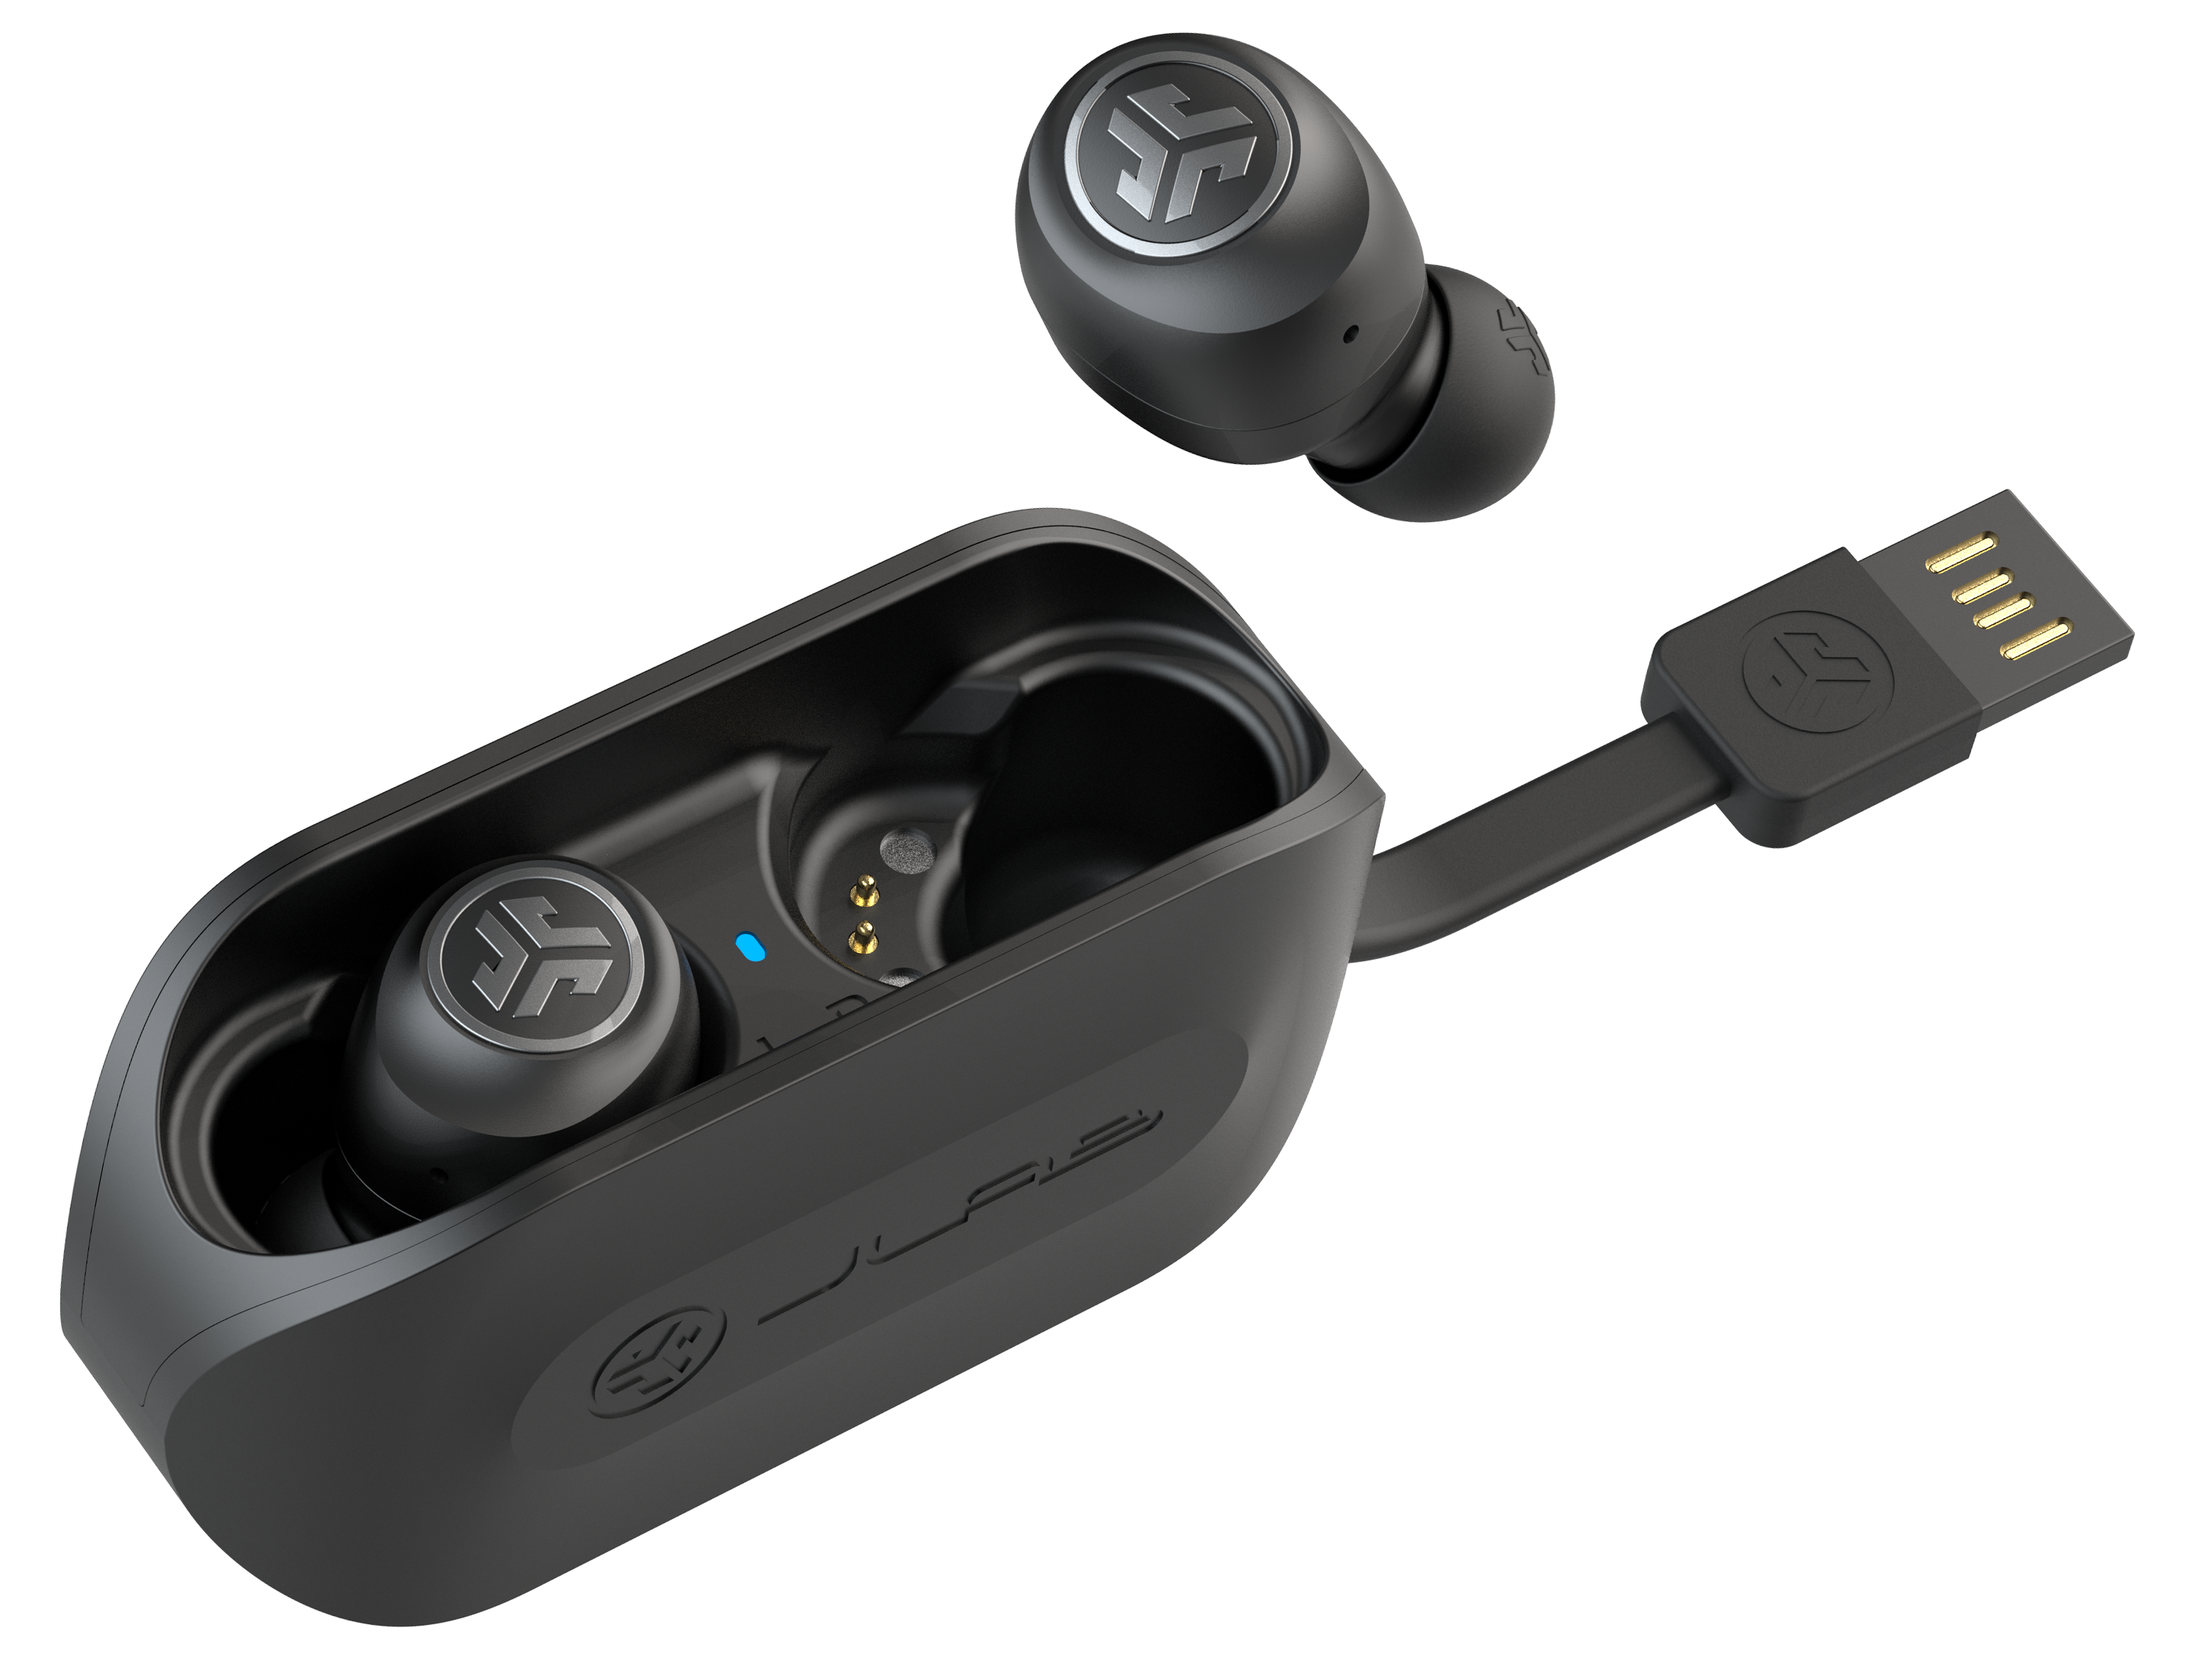 JBuds Air True Wireless Earbuds Auriculares en estuche de carga con cable USB integrado